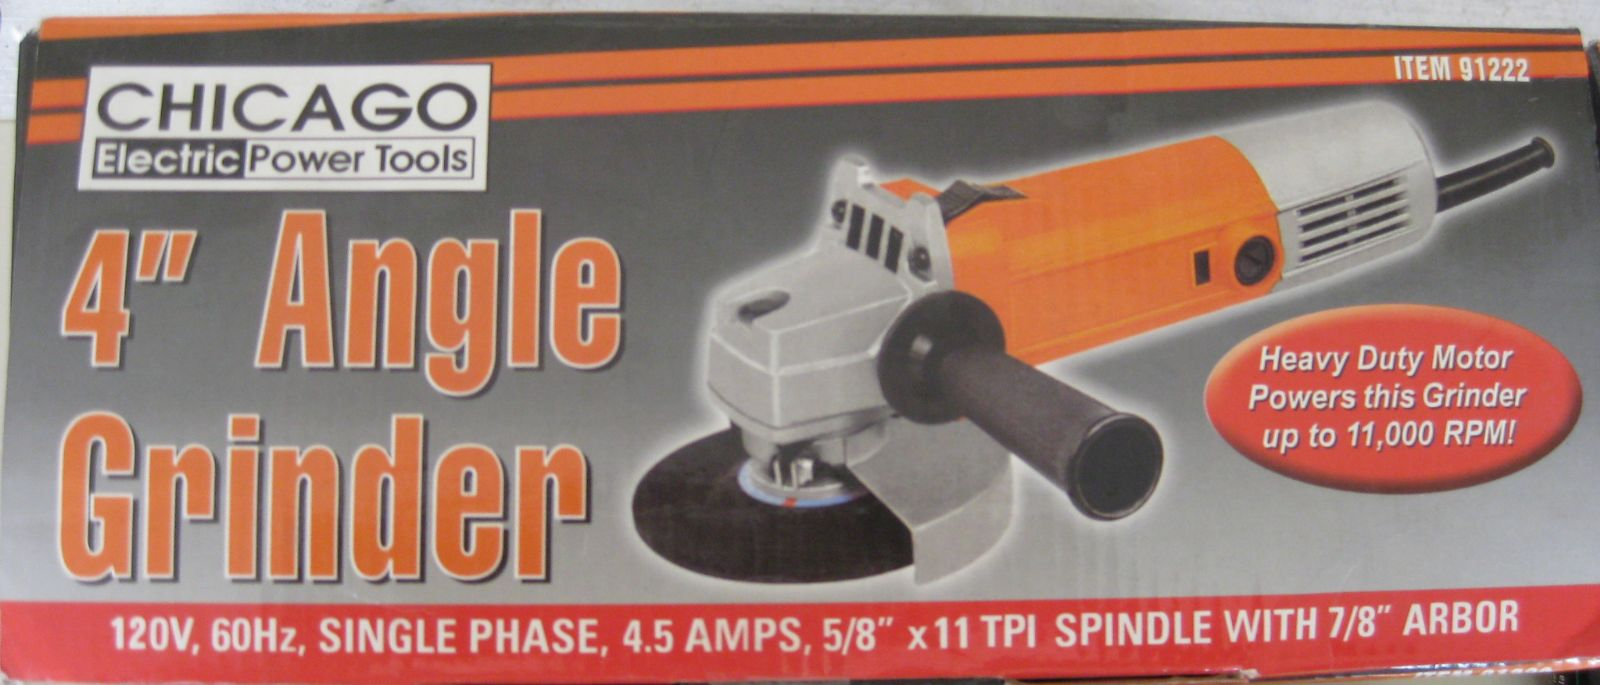 Chicago Electric Power Tools Angle Grinder